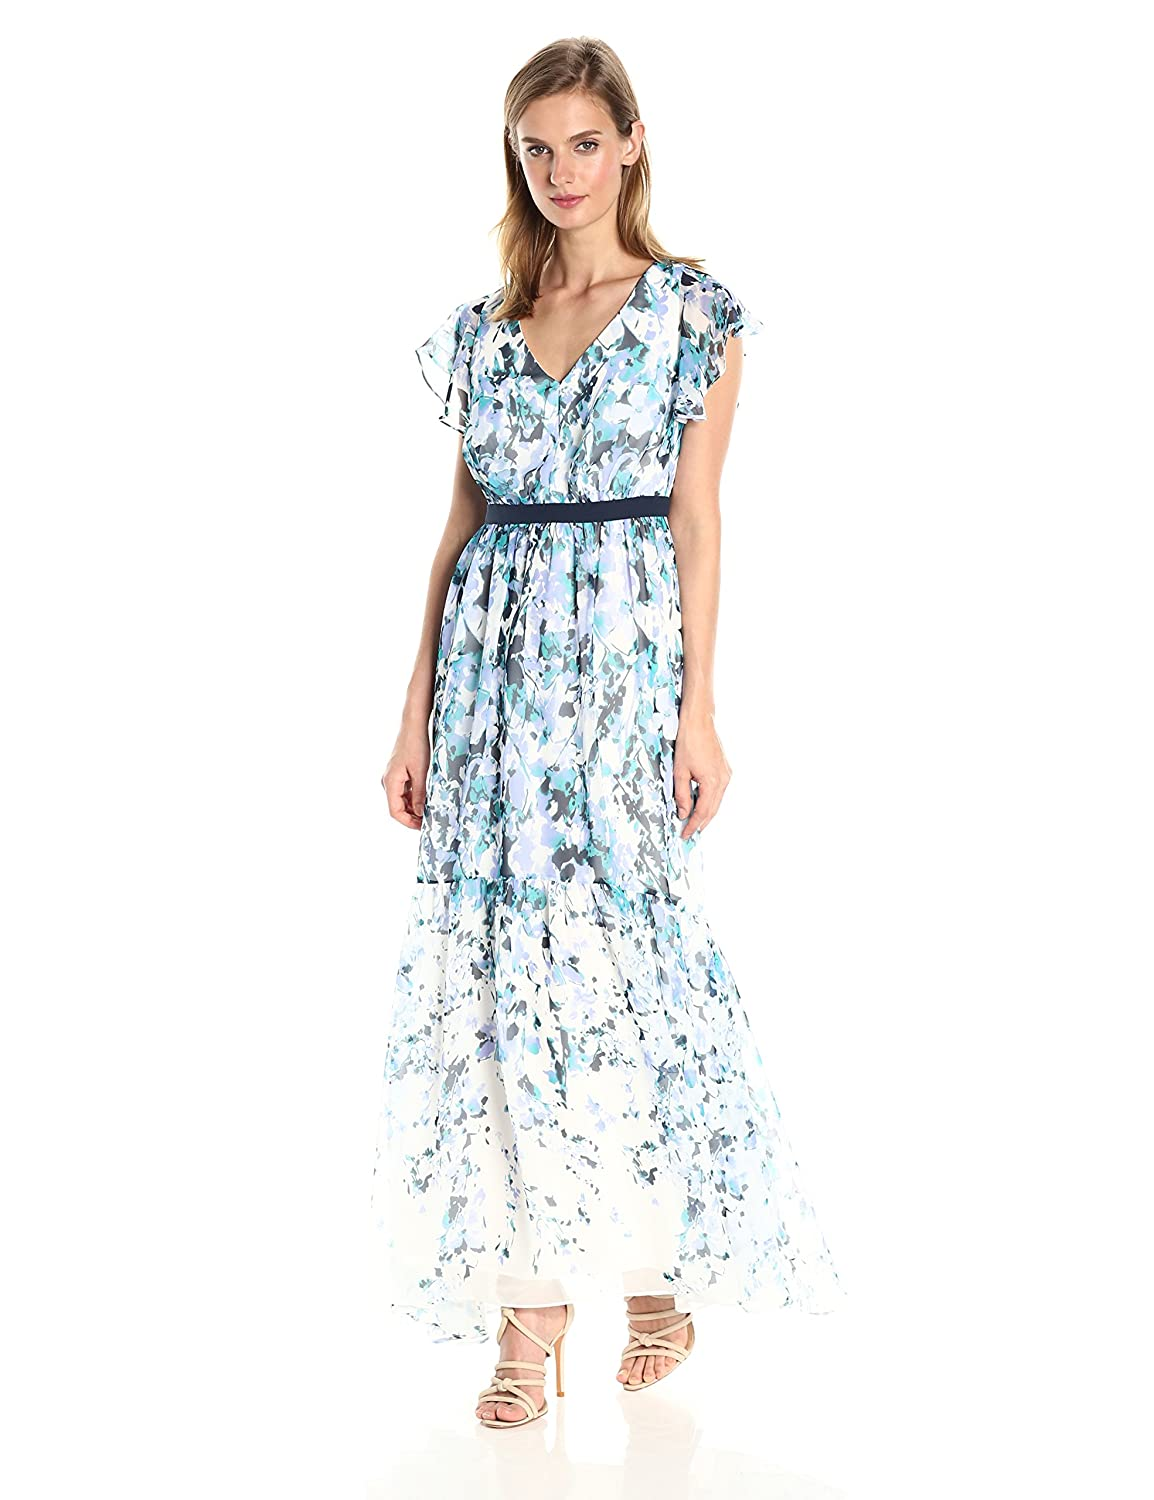 c3a98fcc7 Watercolor Floral Chiffon Maxi Dress With Flutter Sleeves - raveitsafe